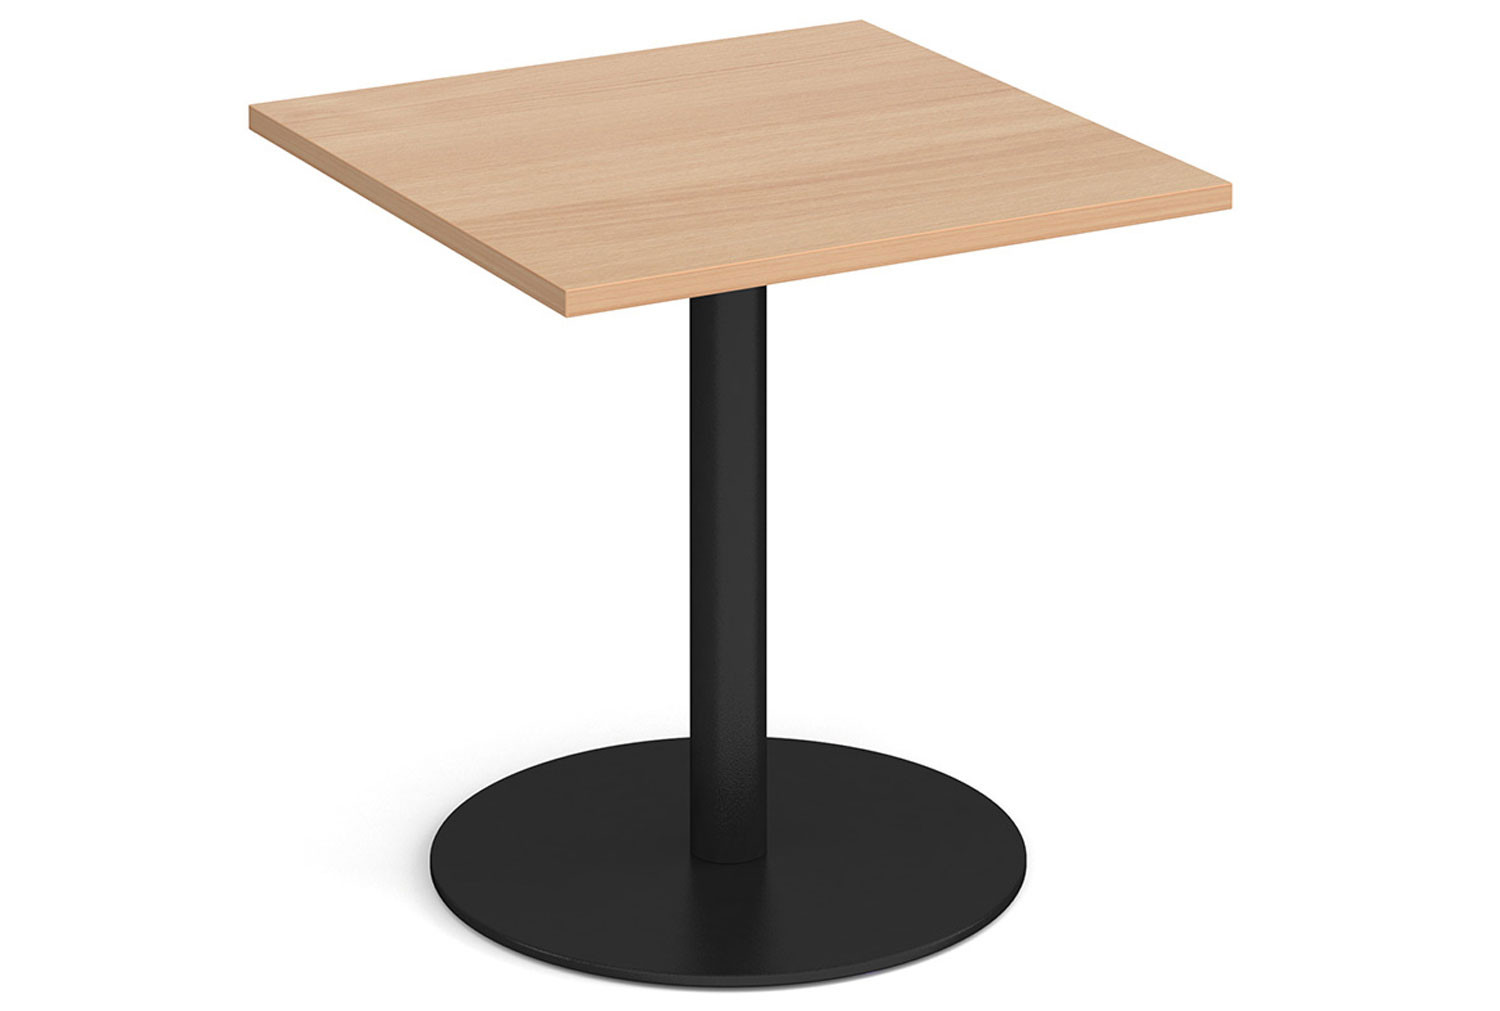 Carducci Square Dining Table